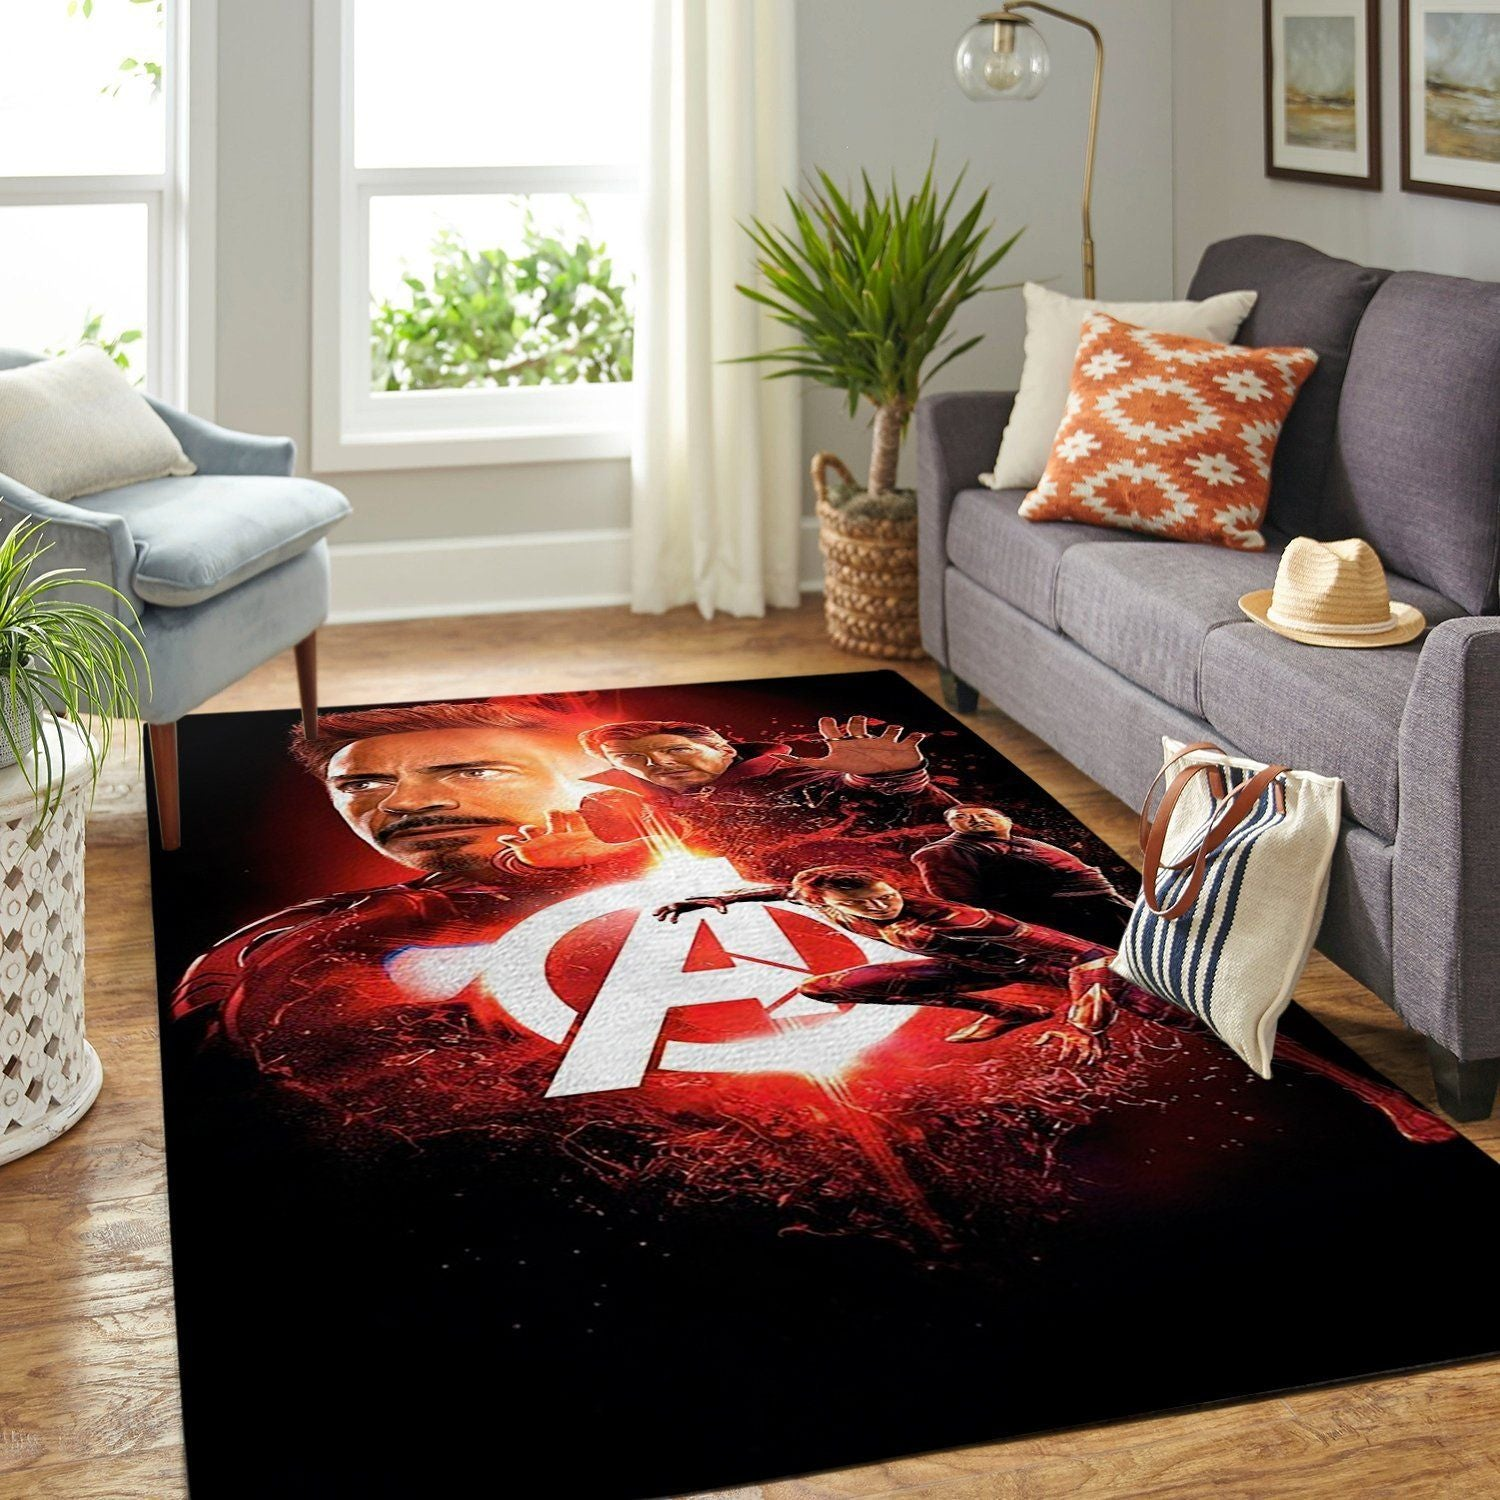 Marvel Superhero Area Rug, Red Avengers / Movie Floor Decor RA0826